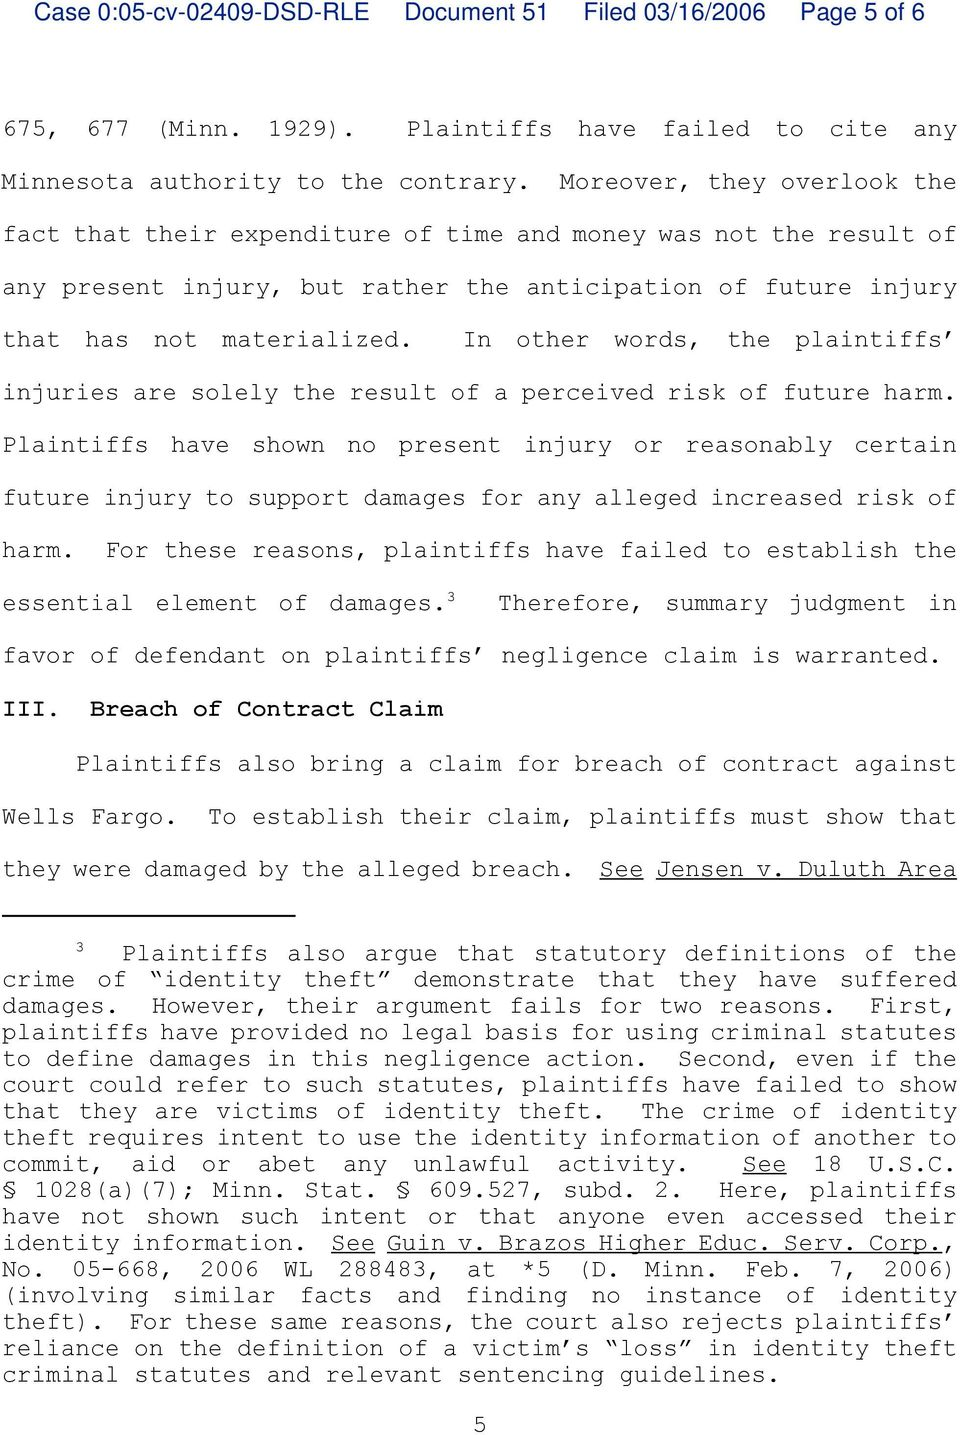 In other words, the plaintiffs injuries are solely the result of a perceived risk of future harm.